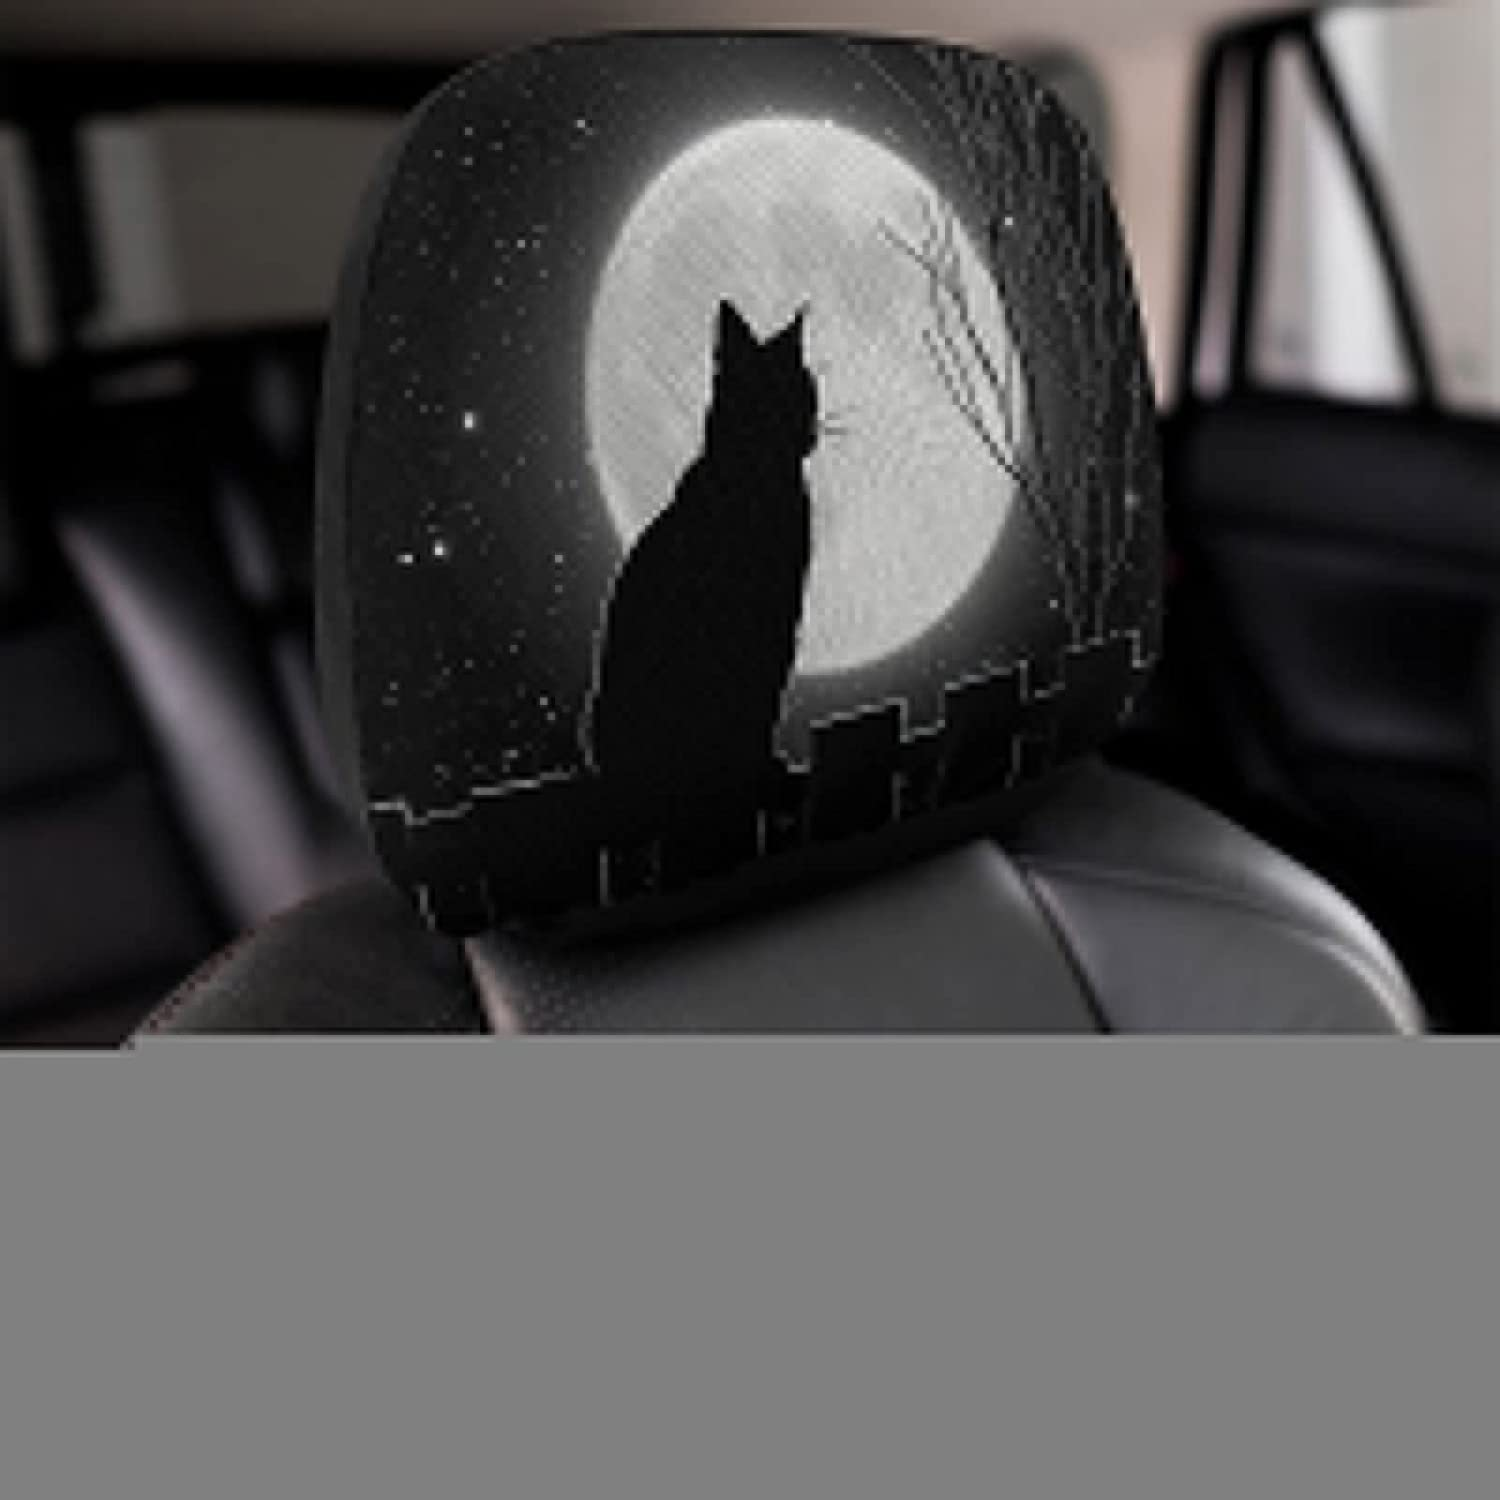 QUZtww 2 Pcs It New Shipping Free Shipping is very popular Car Seat Headrest Cover Cat Kitty Full C Moon Night